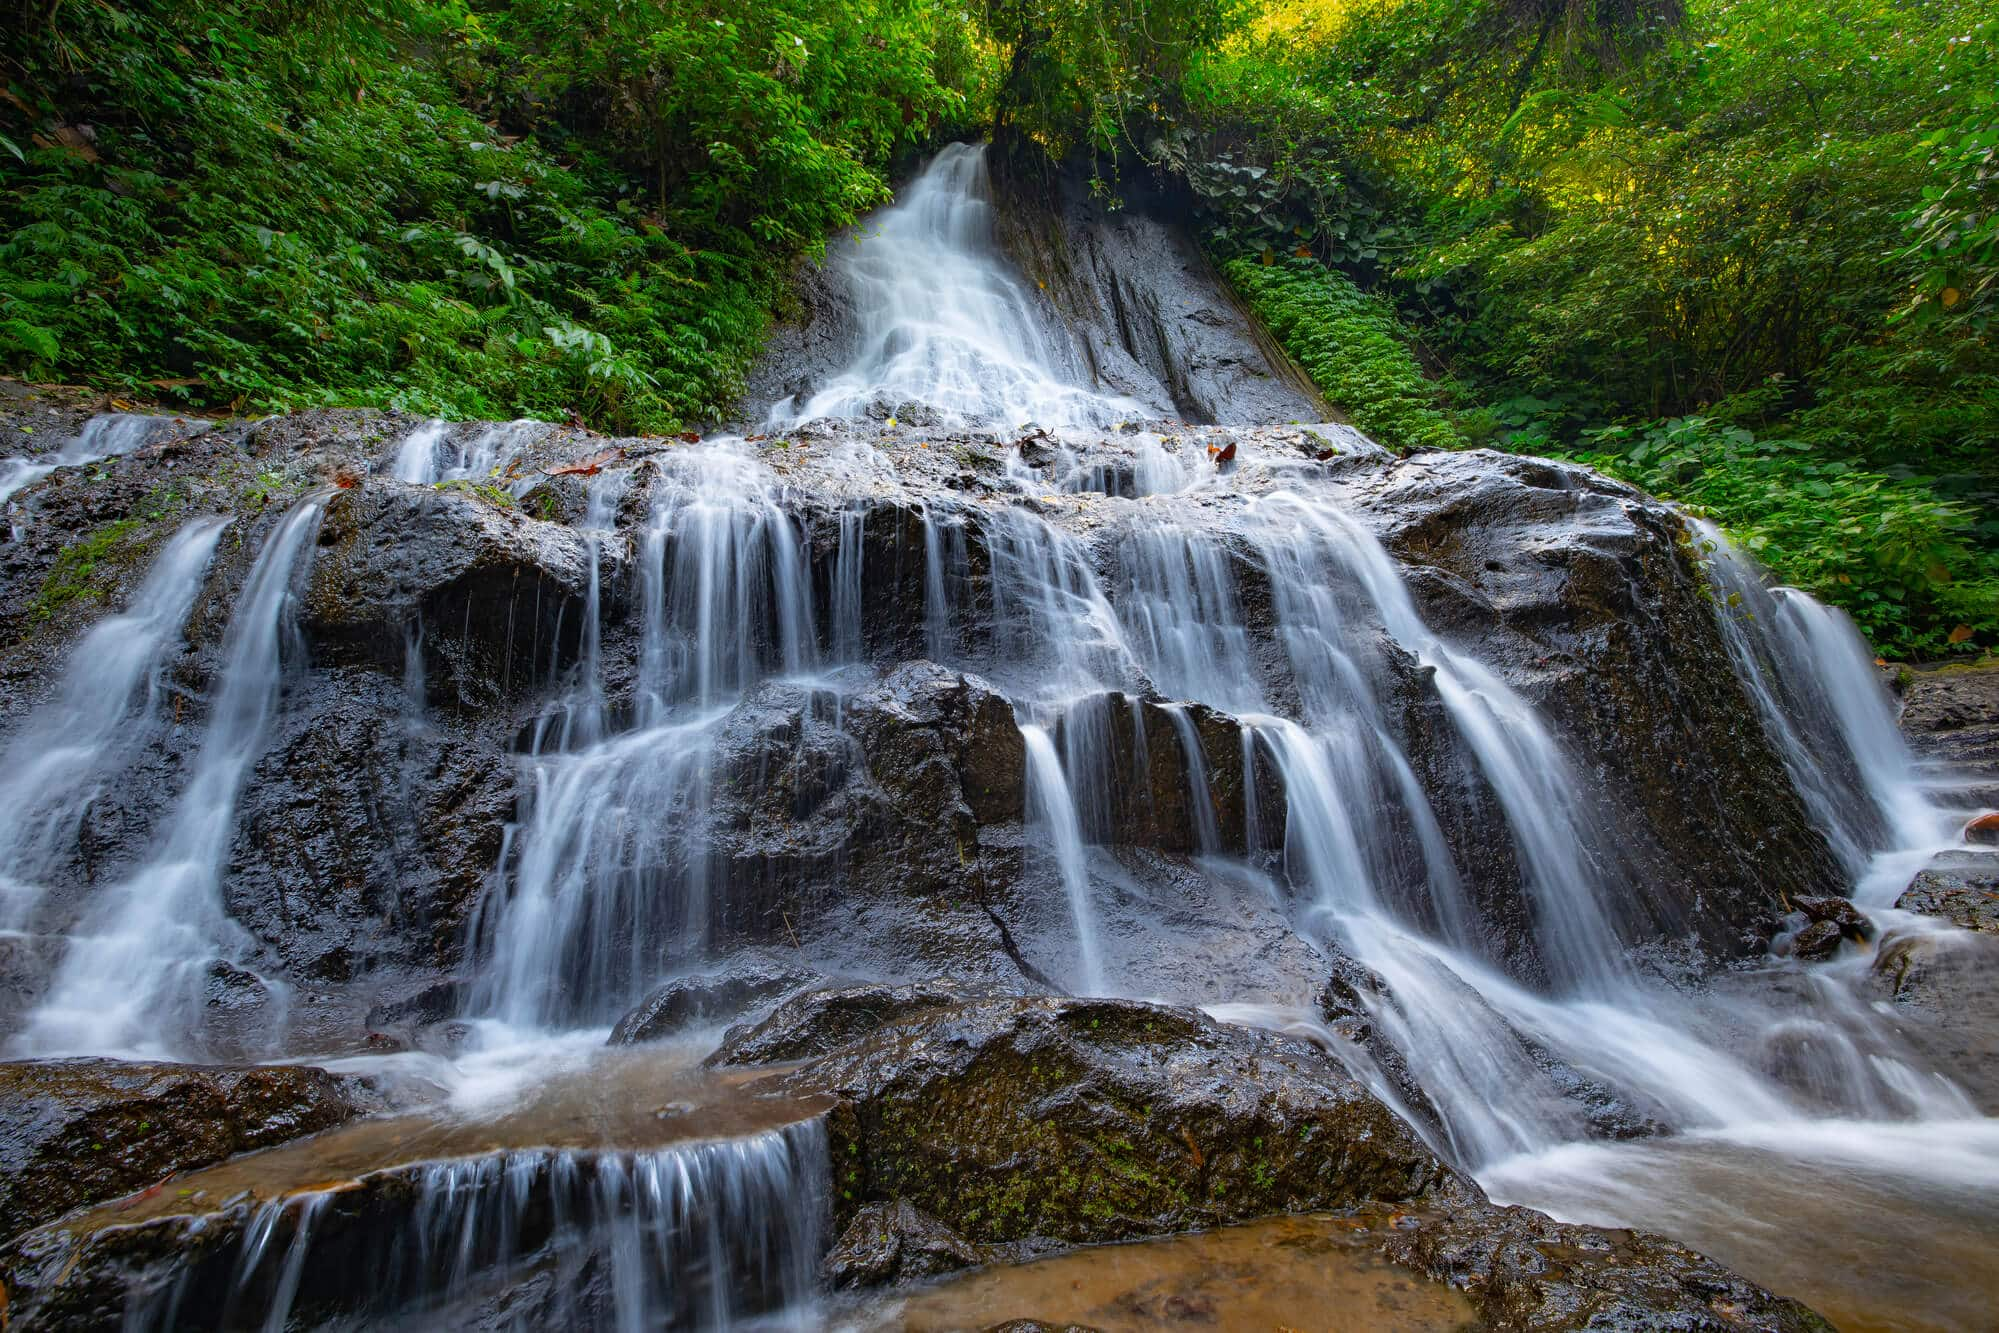 A guide to all the best waterfalls in Ubud Bali - Goa Giri Campuhan Waterfall, also known as GGC